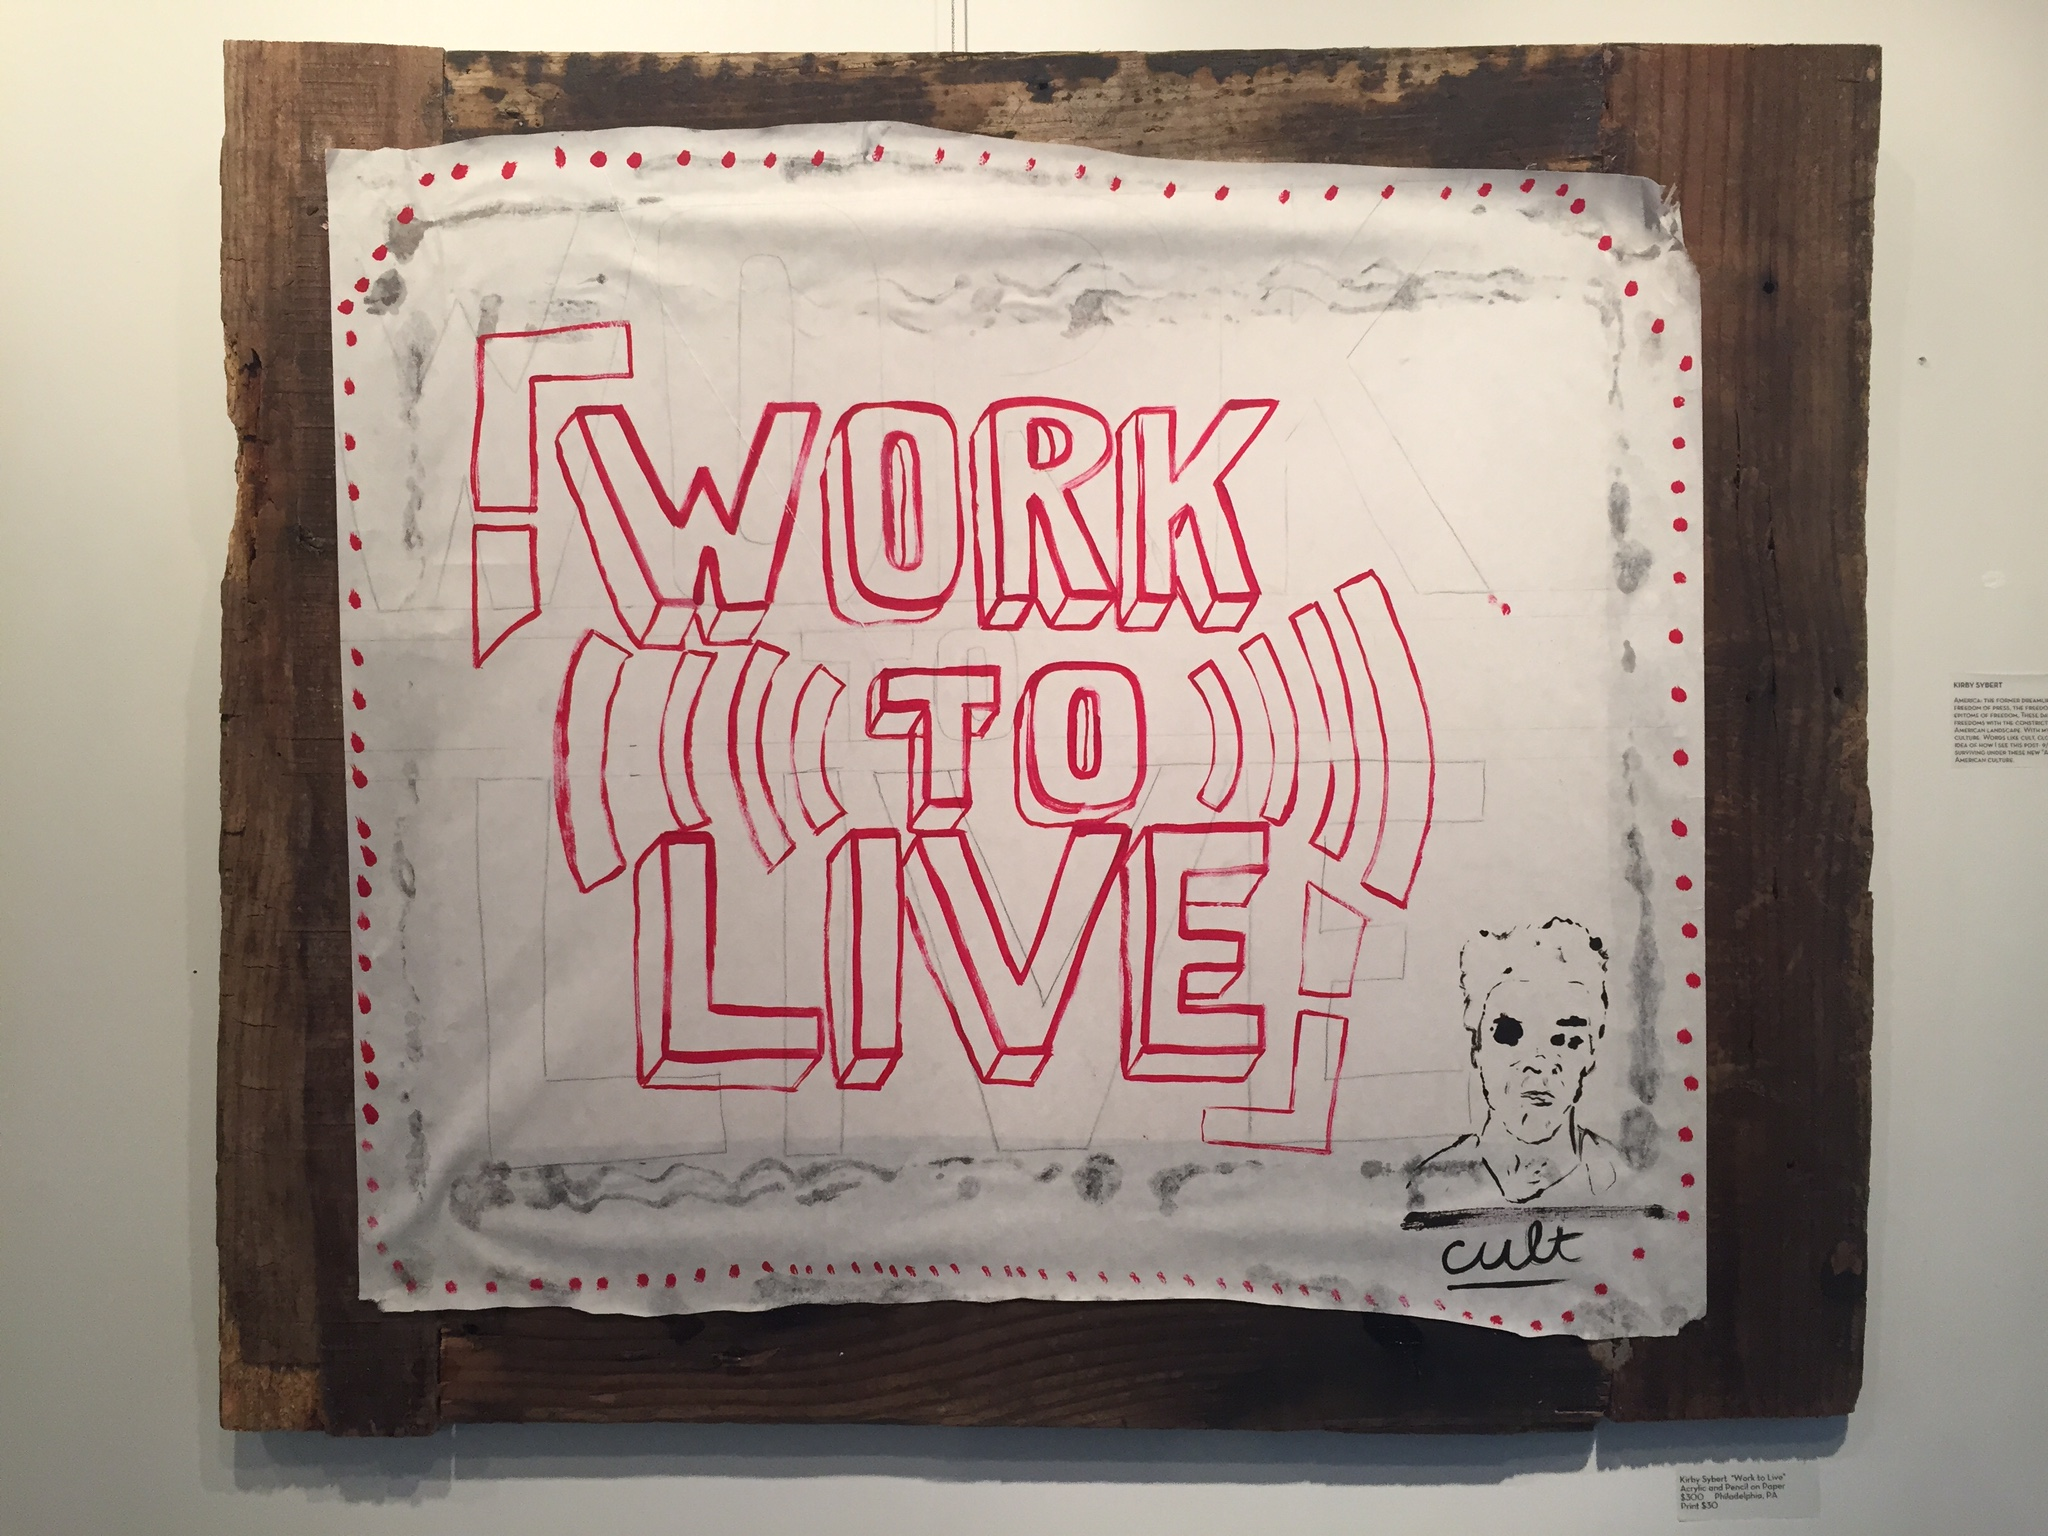 """Kirby Sybert. Work to Live. Acrylic and Pencil on Paper on Wood. 30"""" x 24.5."""""""